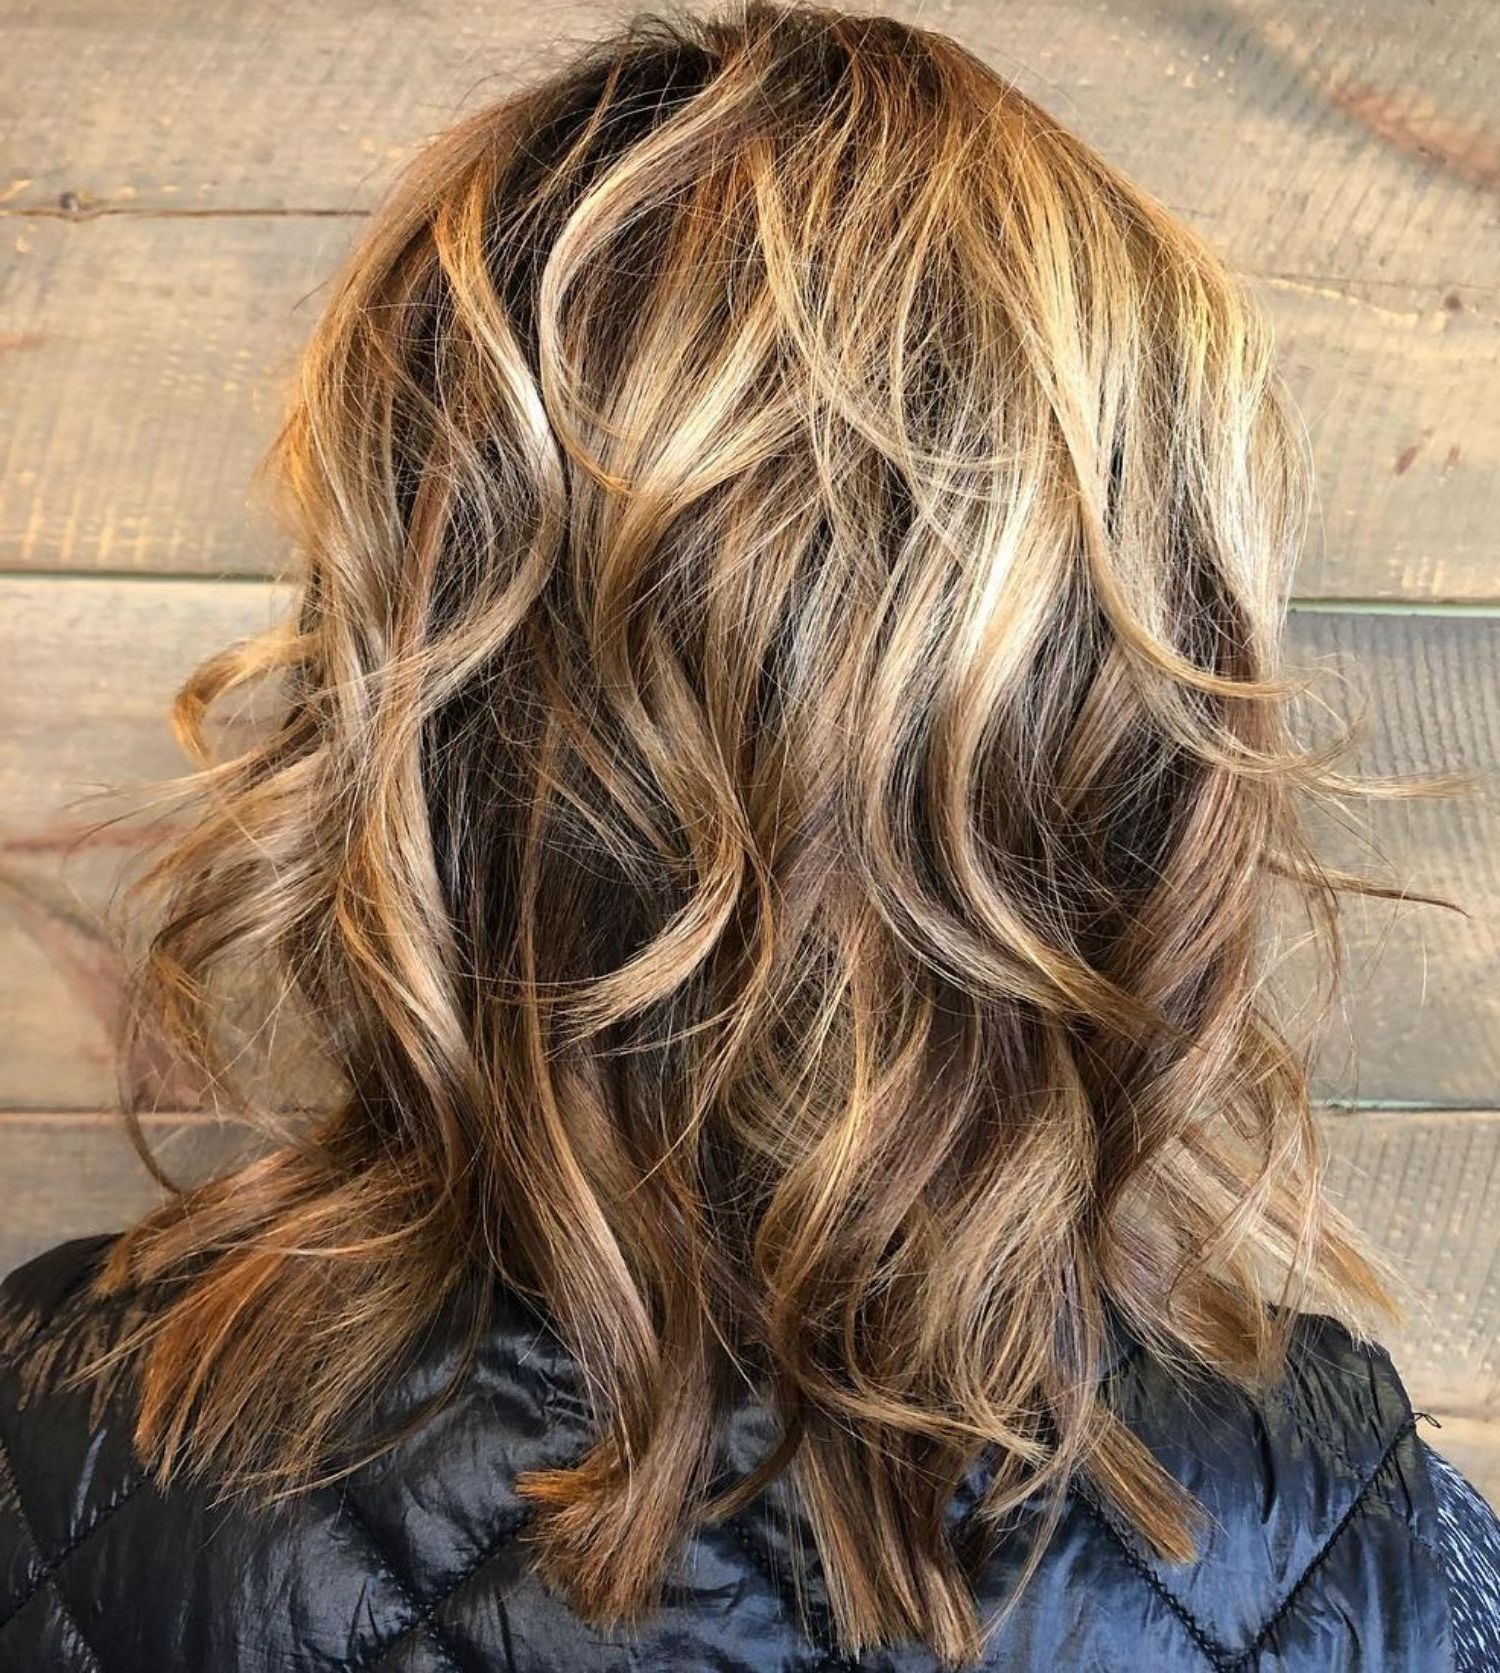 Pin On Hair Cuts I Am Thinking Of Trying With 2019 Honey Bronde Shaggy Hairstyles With Bangs (View 5 of 20)